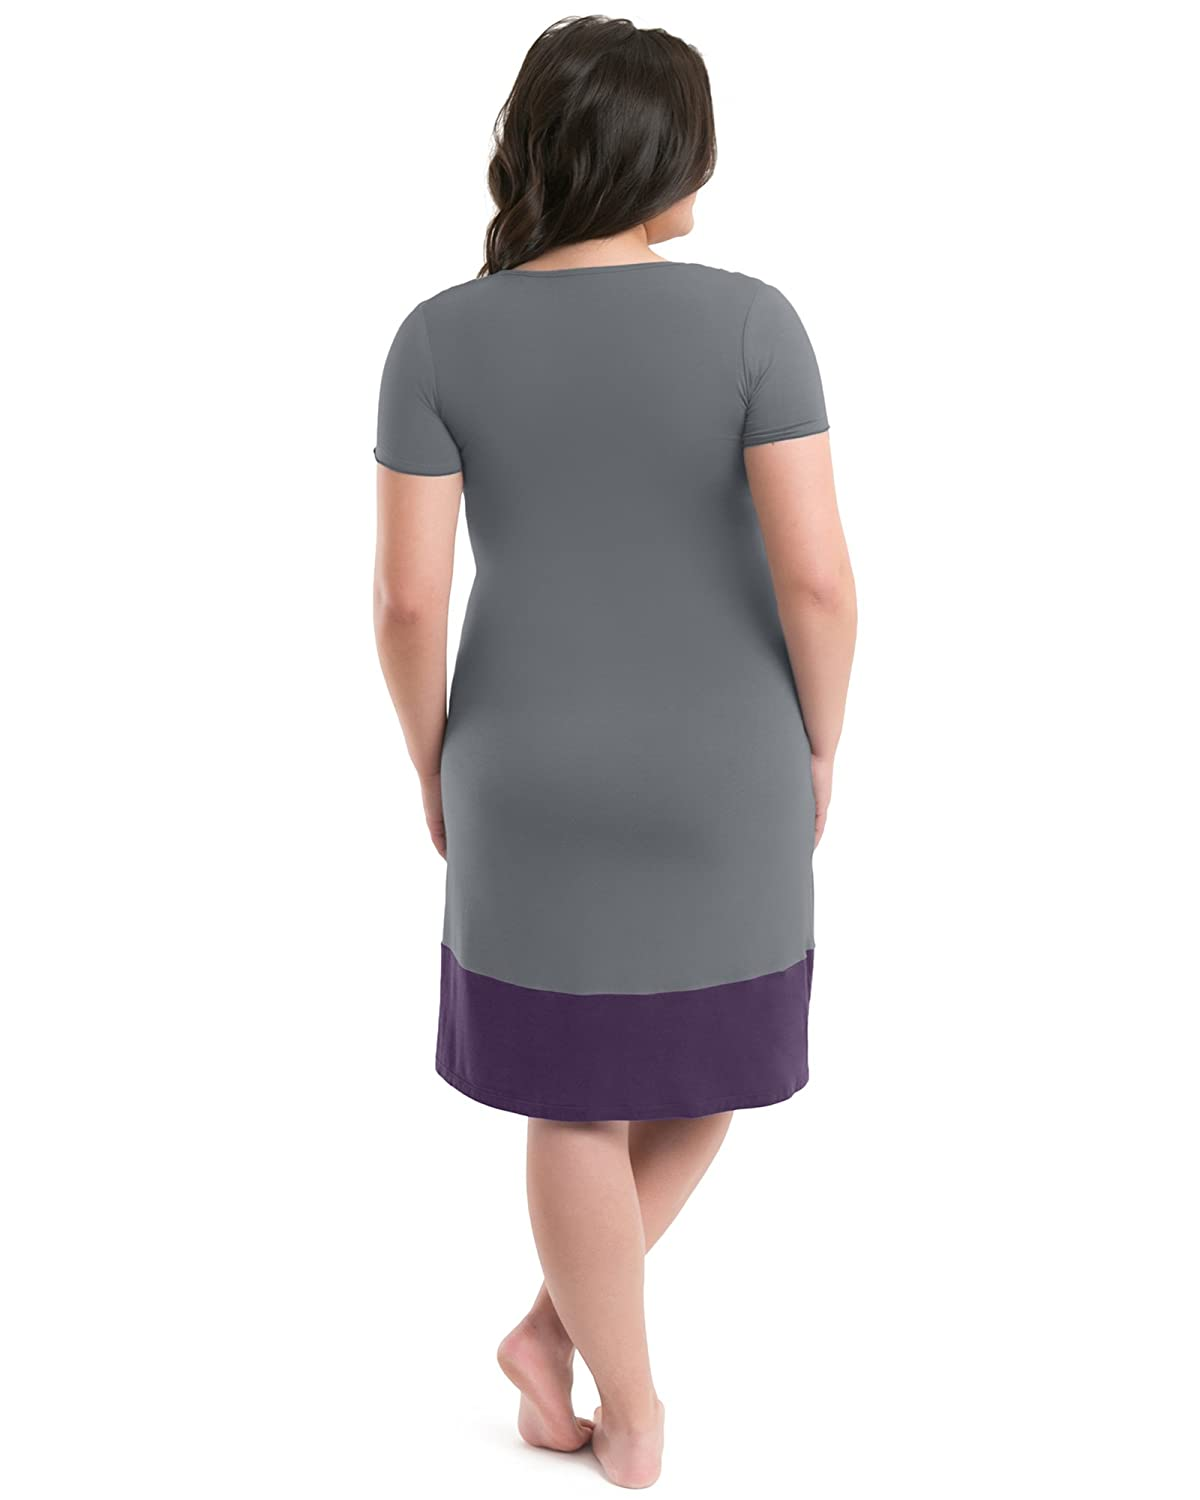 7296d0a991ac8 Kindred Bravely The Angelina Ultra Soft Maternity & Nursing Nightgown Dress  (Grey & Eggplant, X-Small): Amazon.ca: Clothing & Accessories